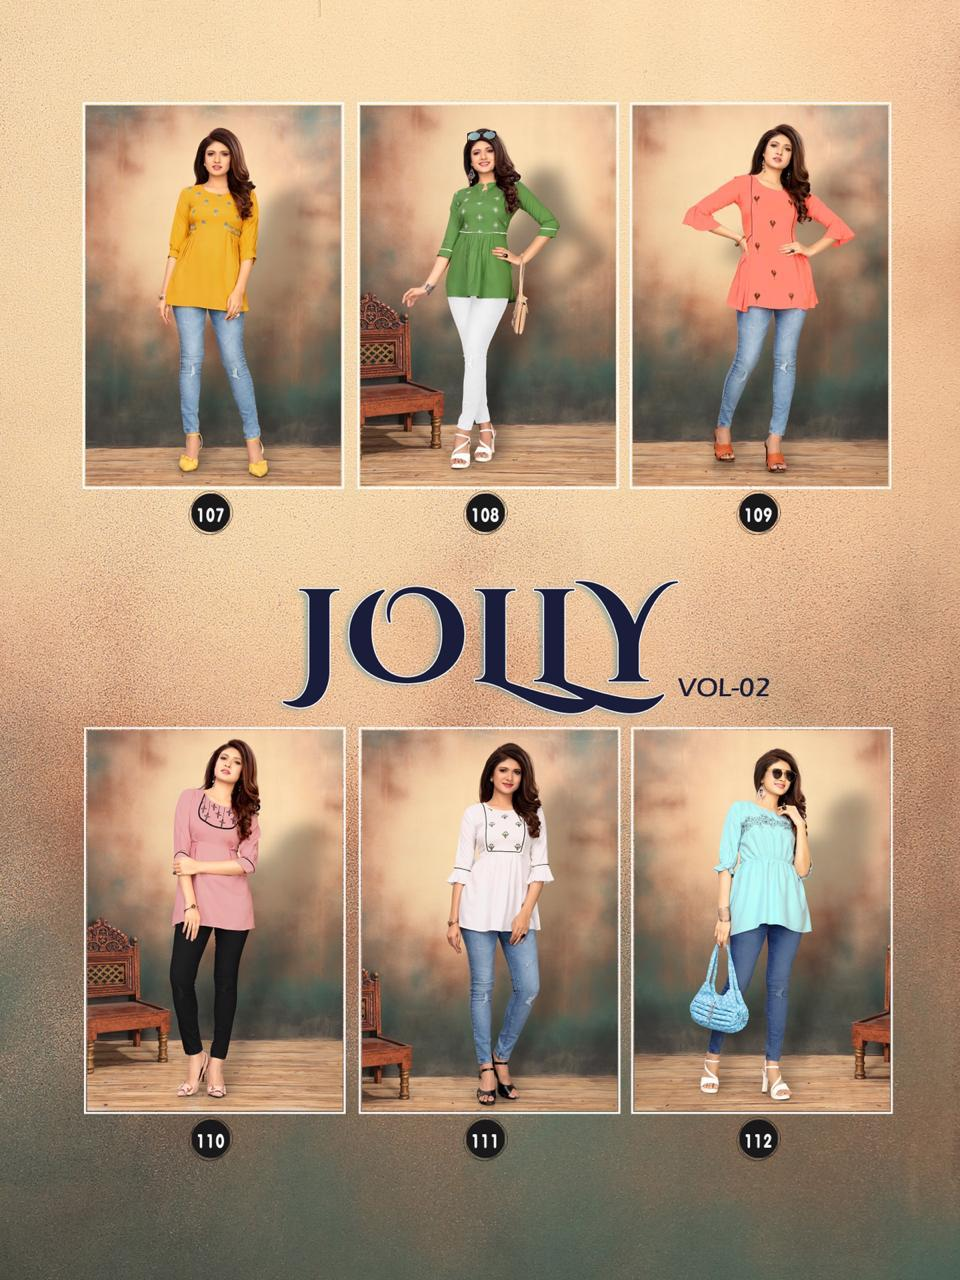 Rt Jolly Vol 2 collection 4